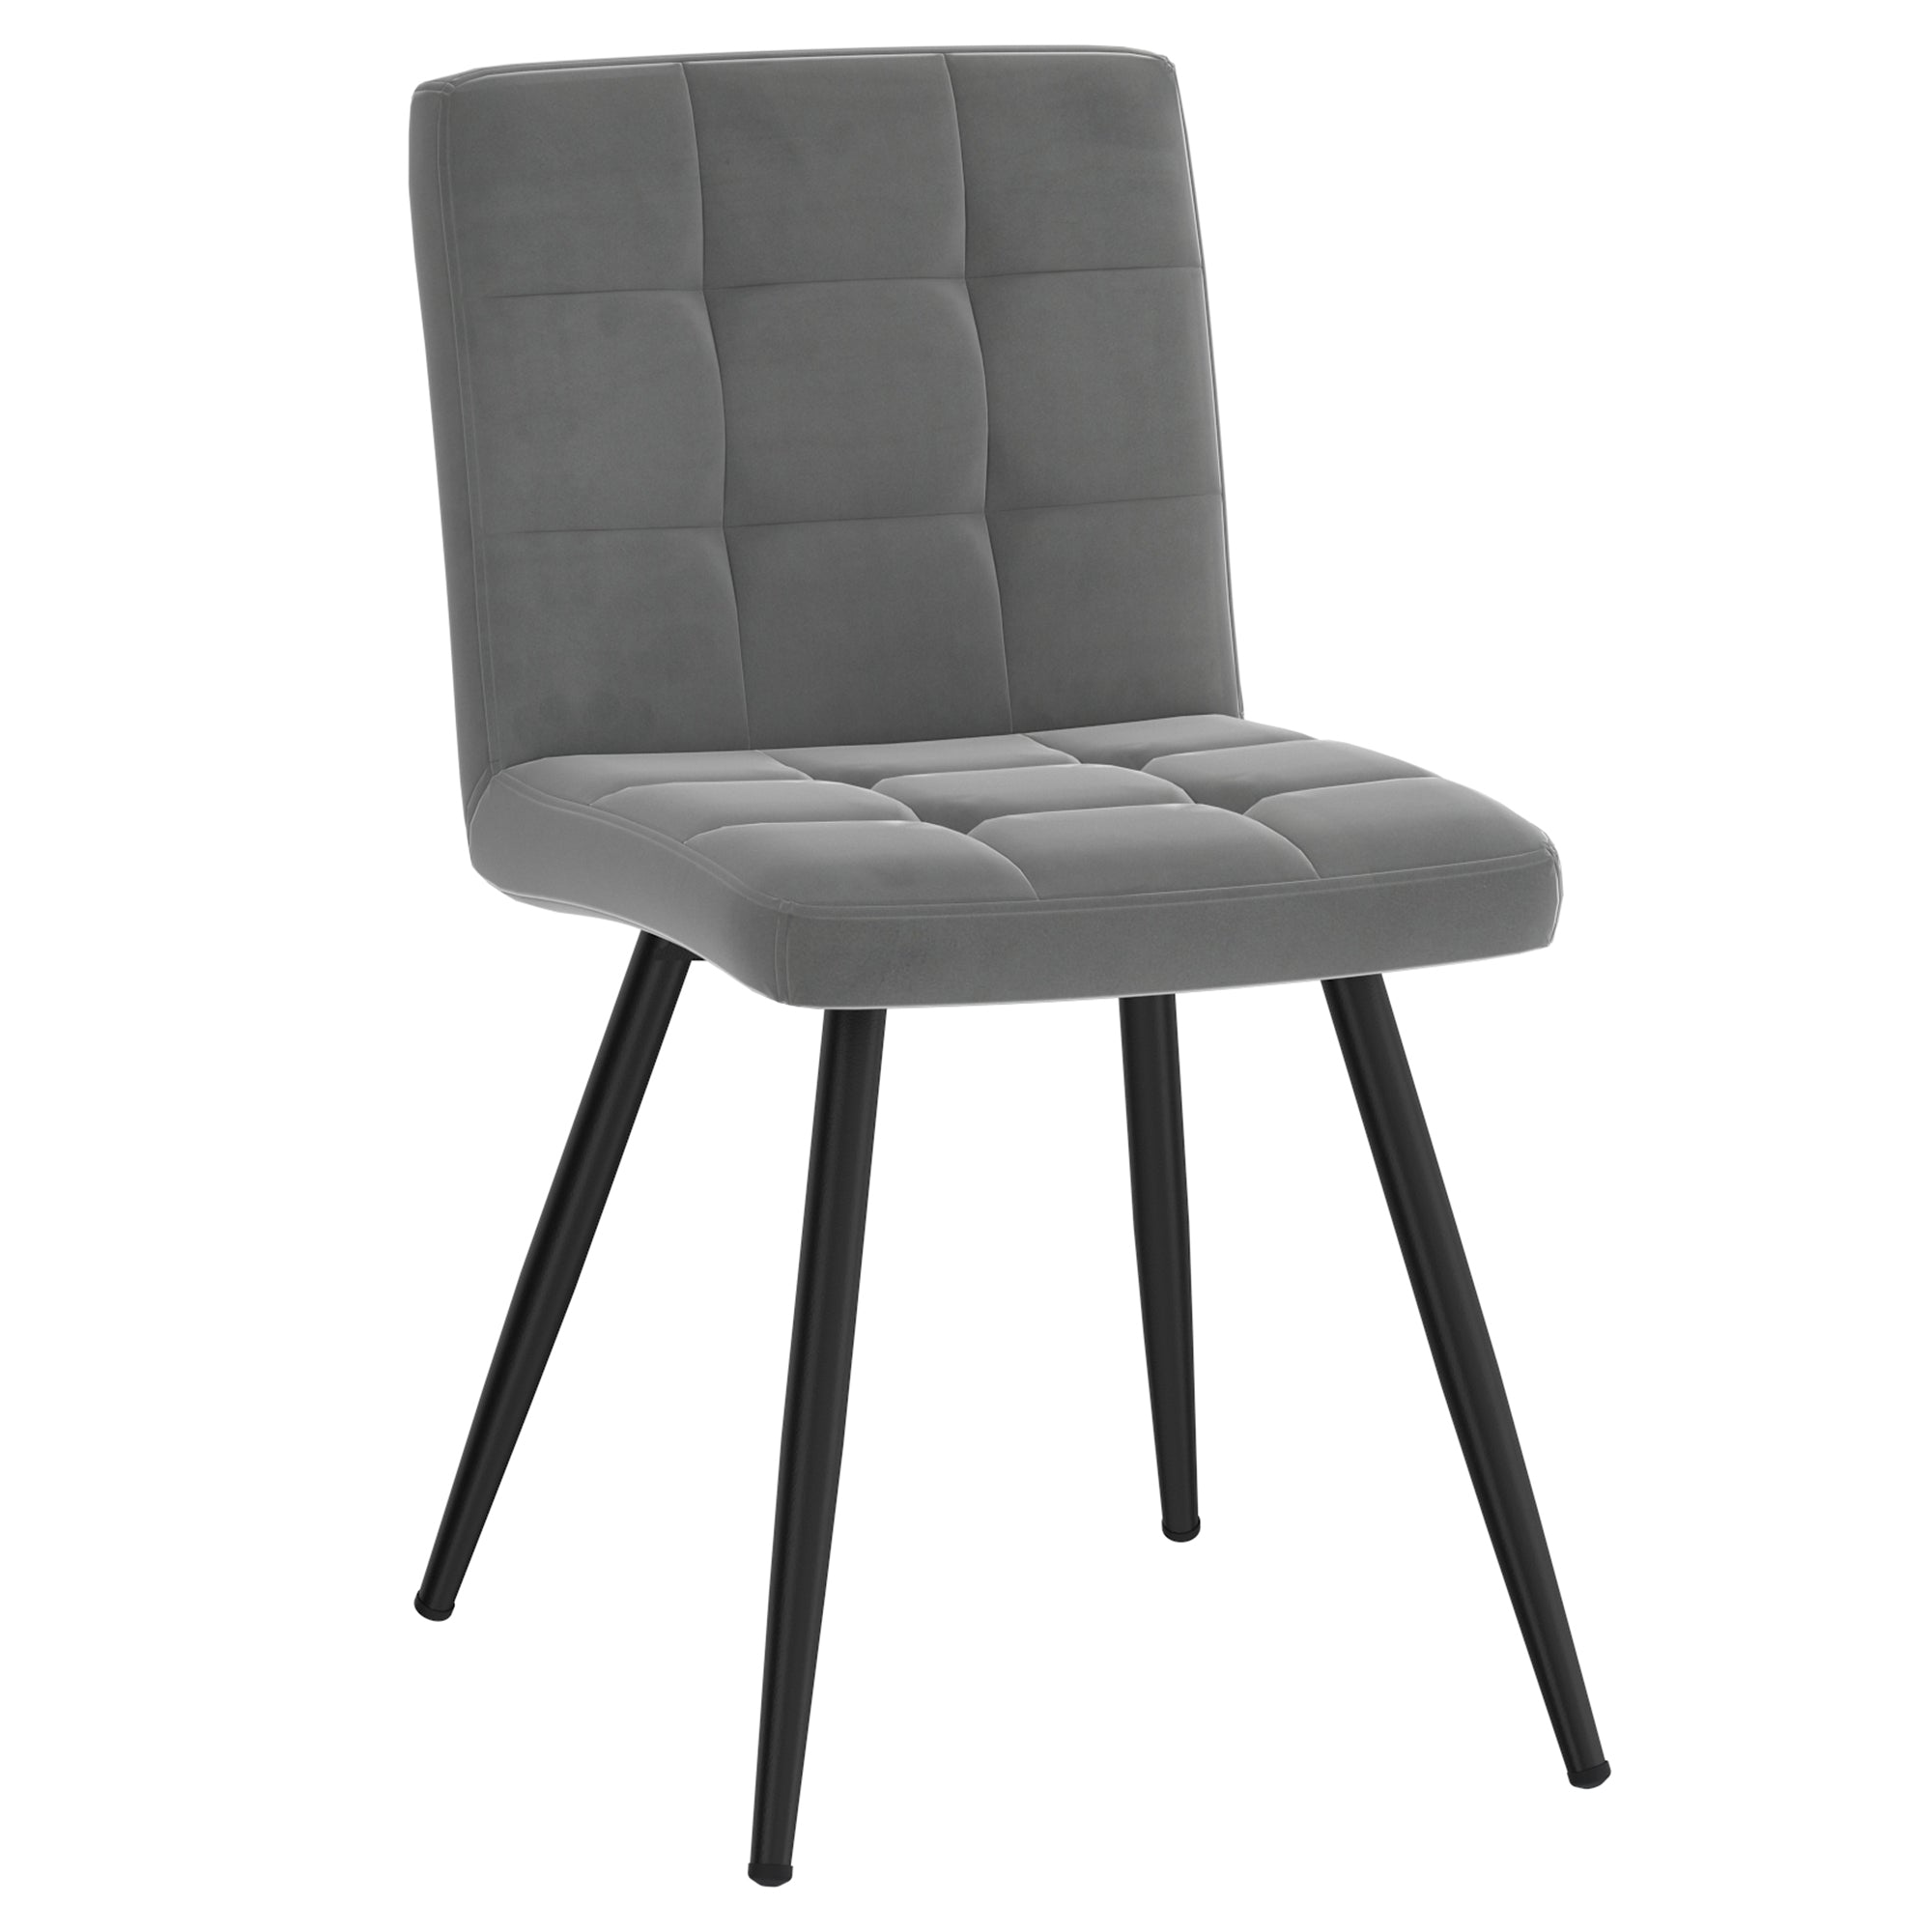 Suzette Side Chair - Grey